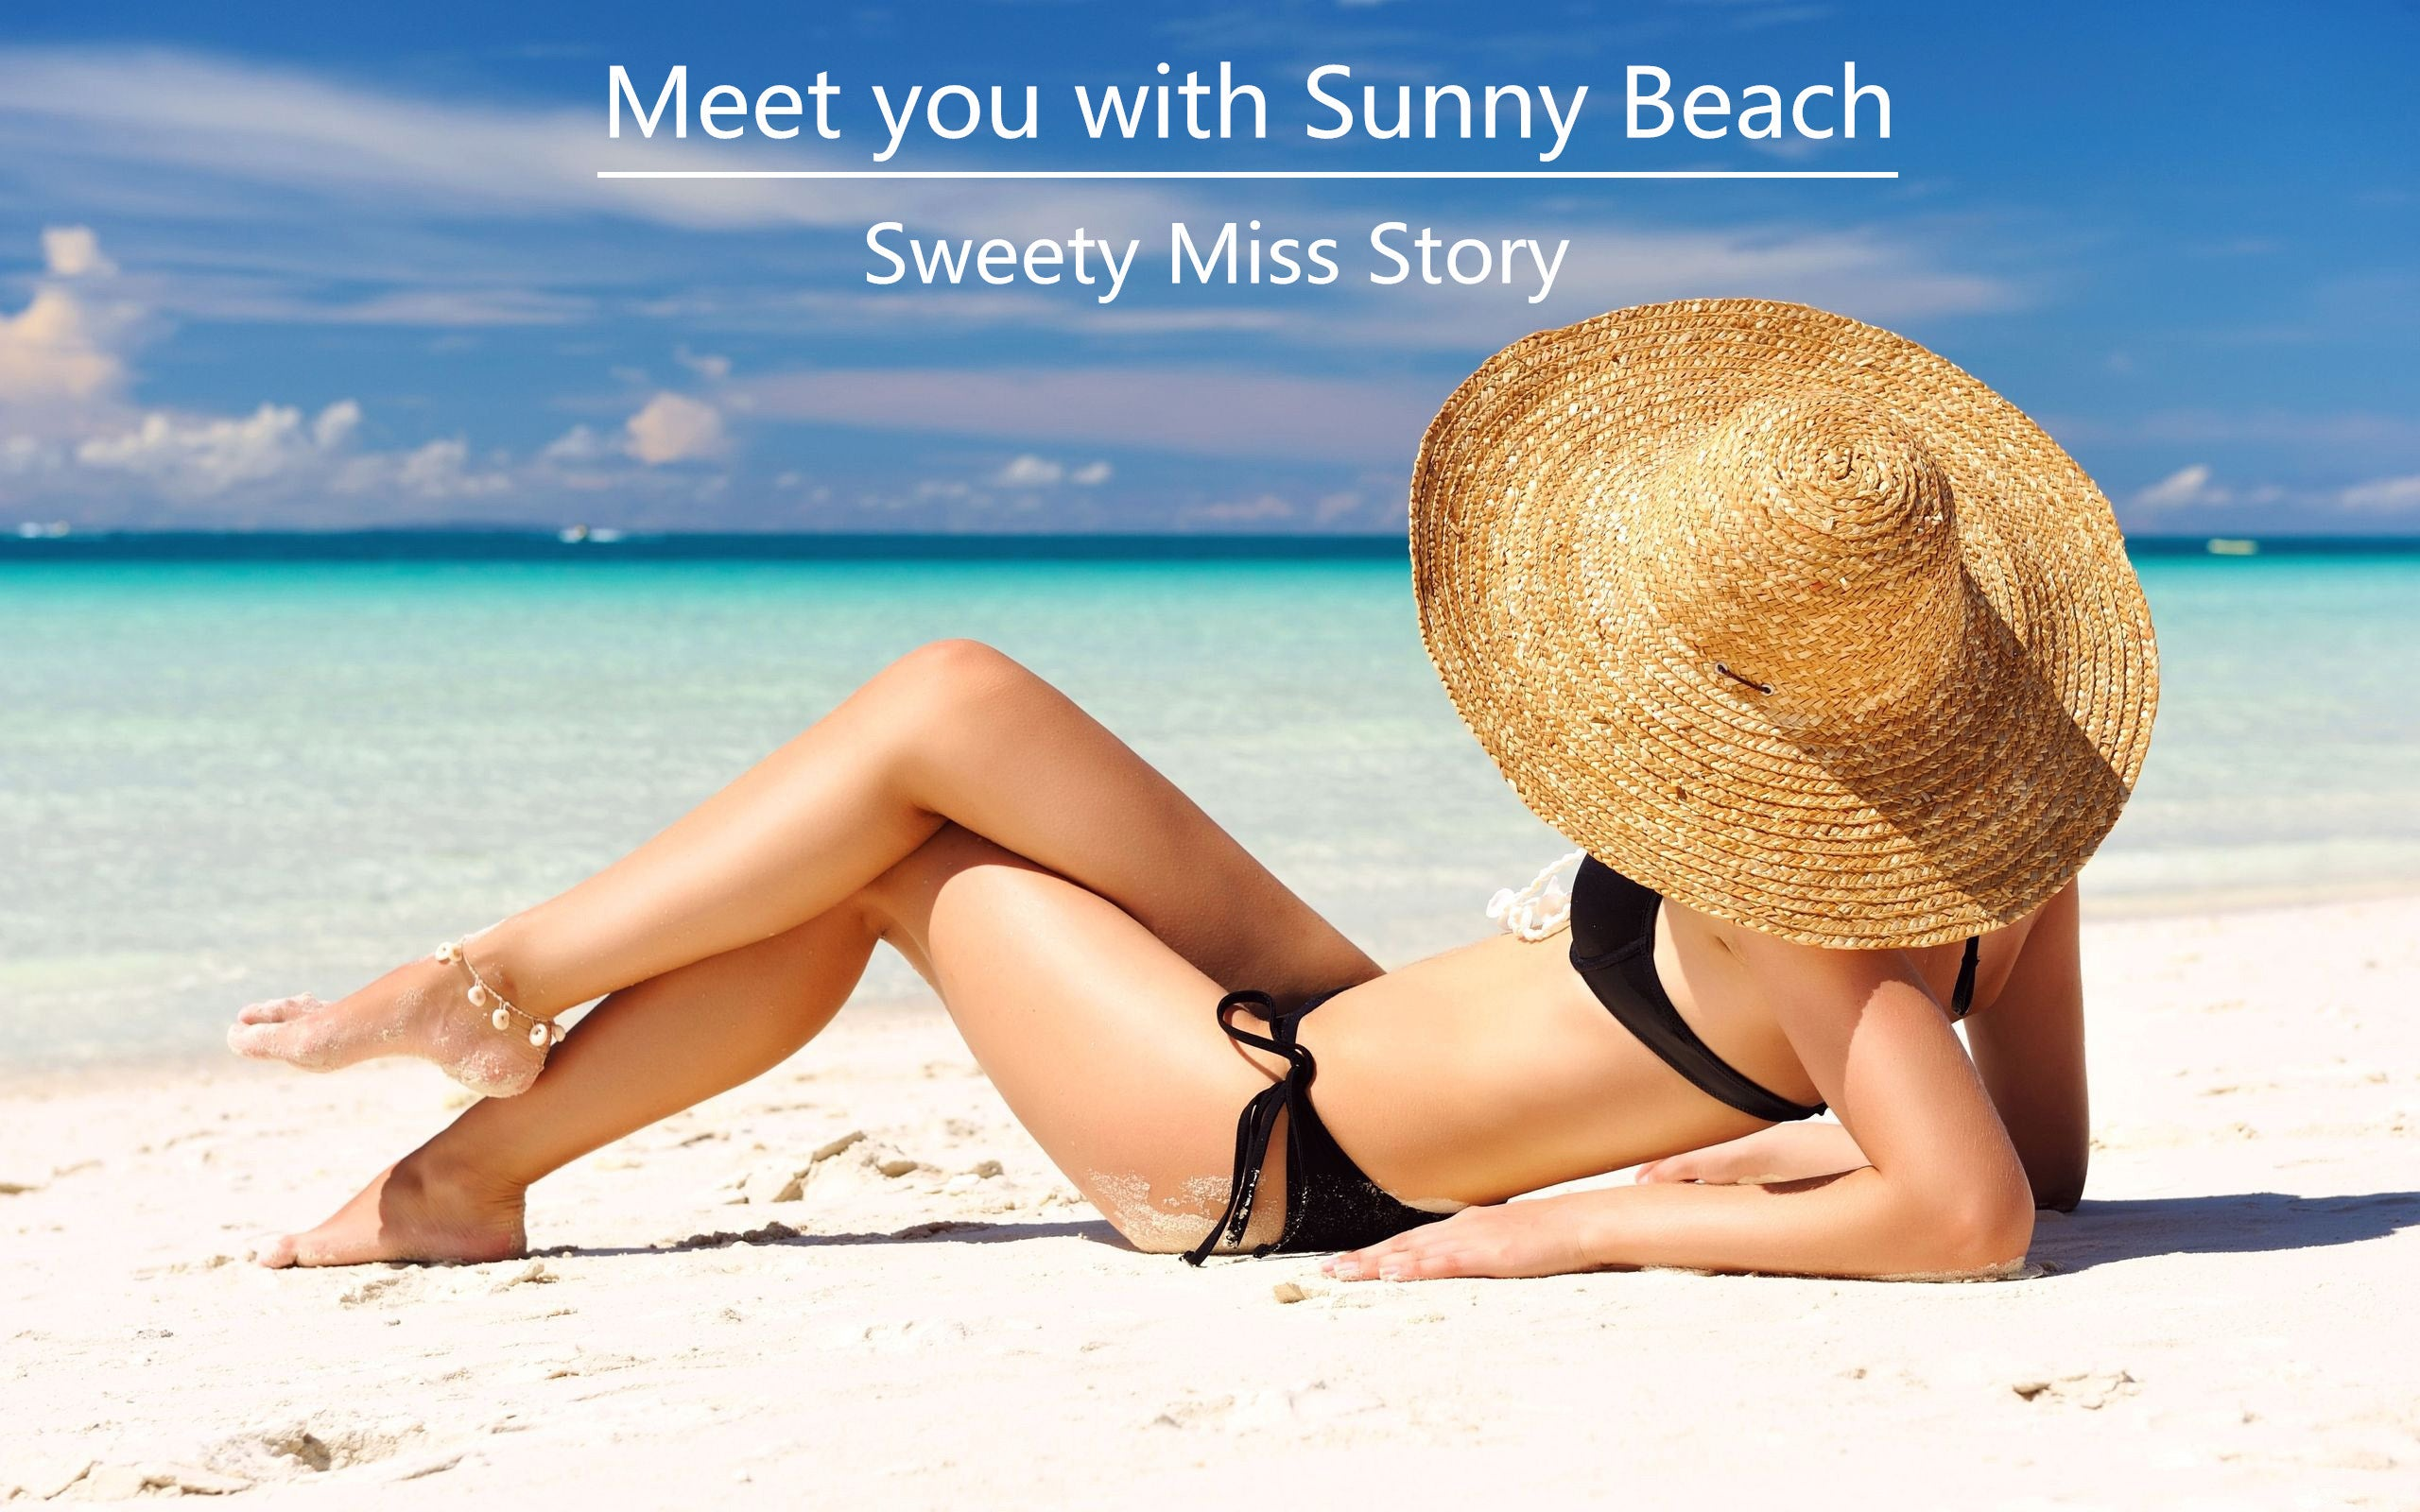 story of sweety miss